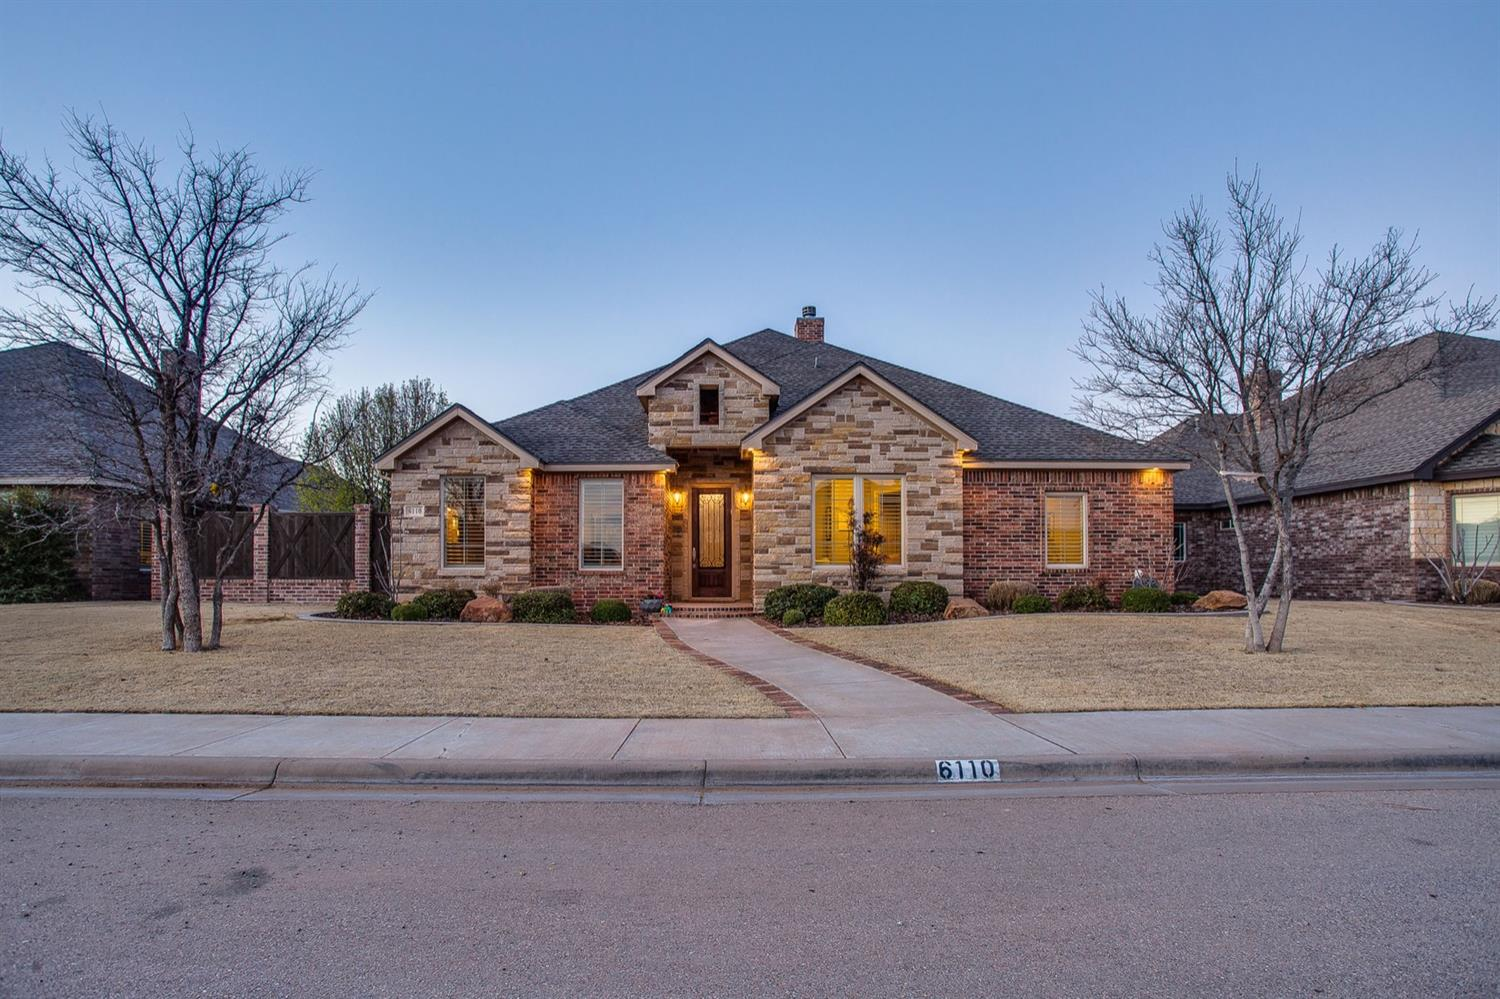 6110 93rd Street, Lubbock in Lubbock County, TX 79424 Home for Sale